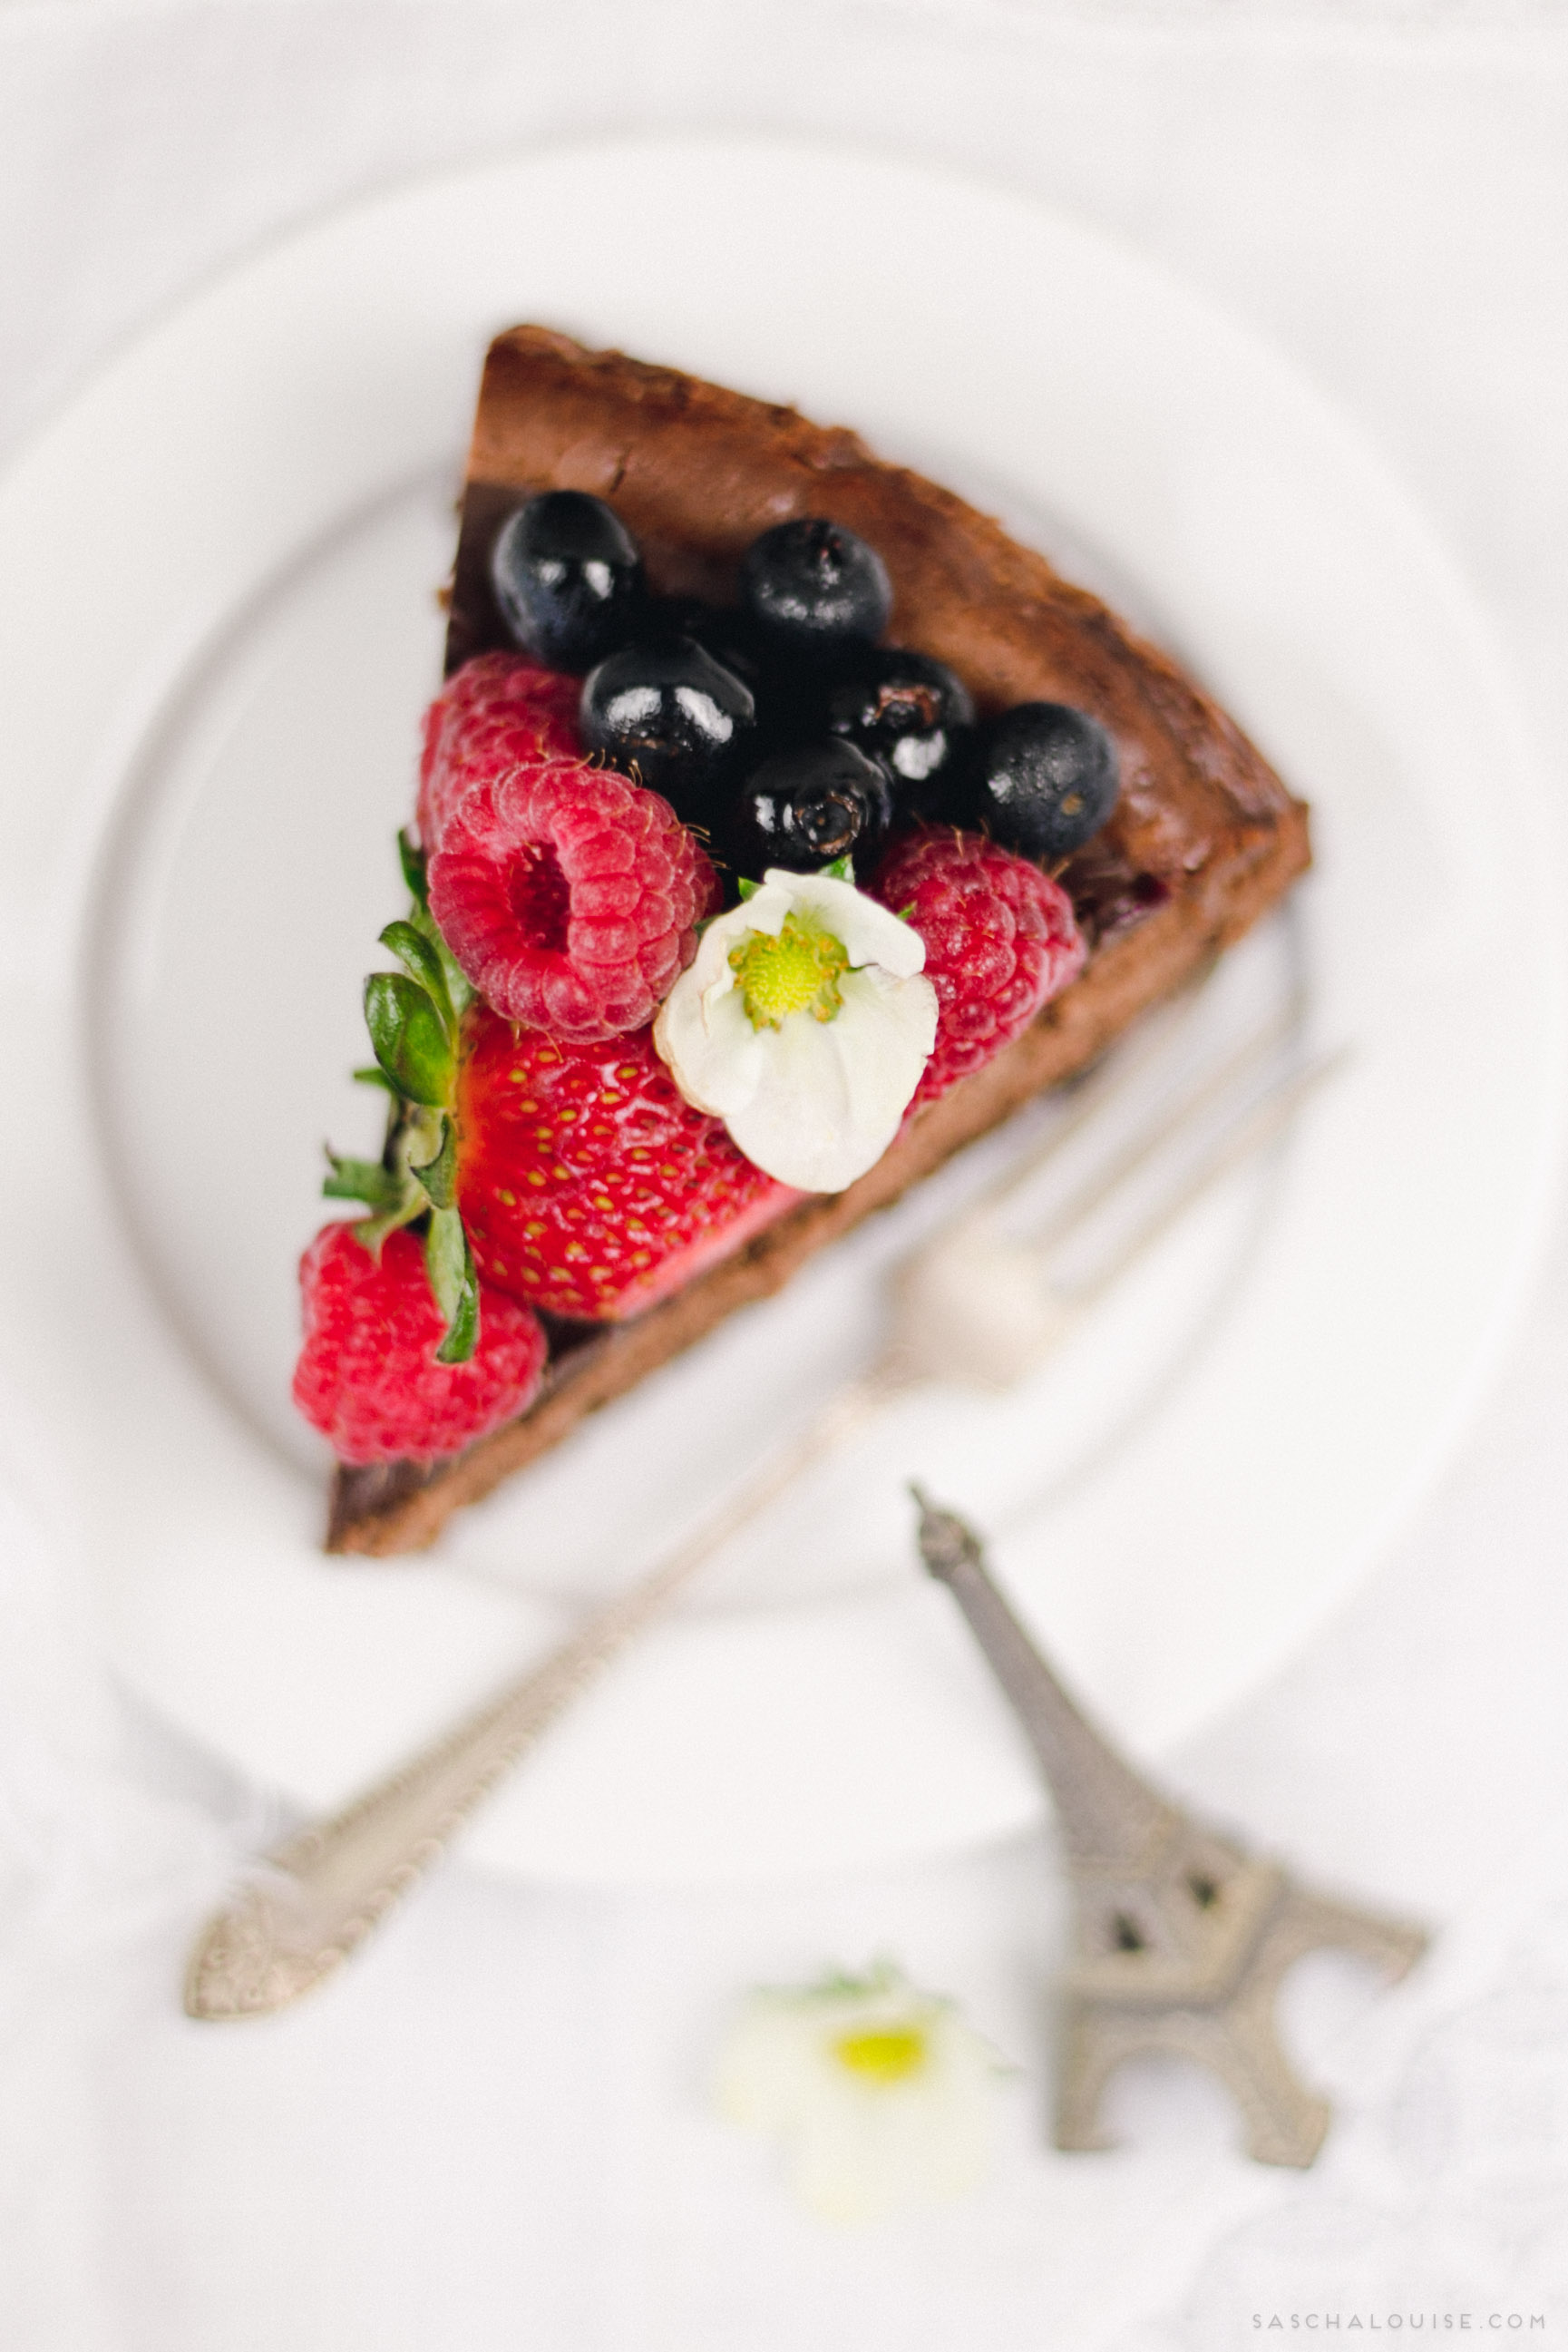 saschalouise.com - Baked Chocolate Cheesecake